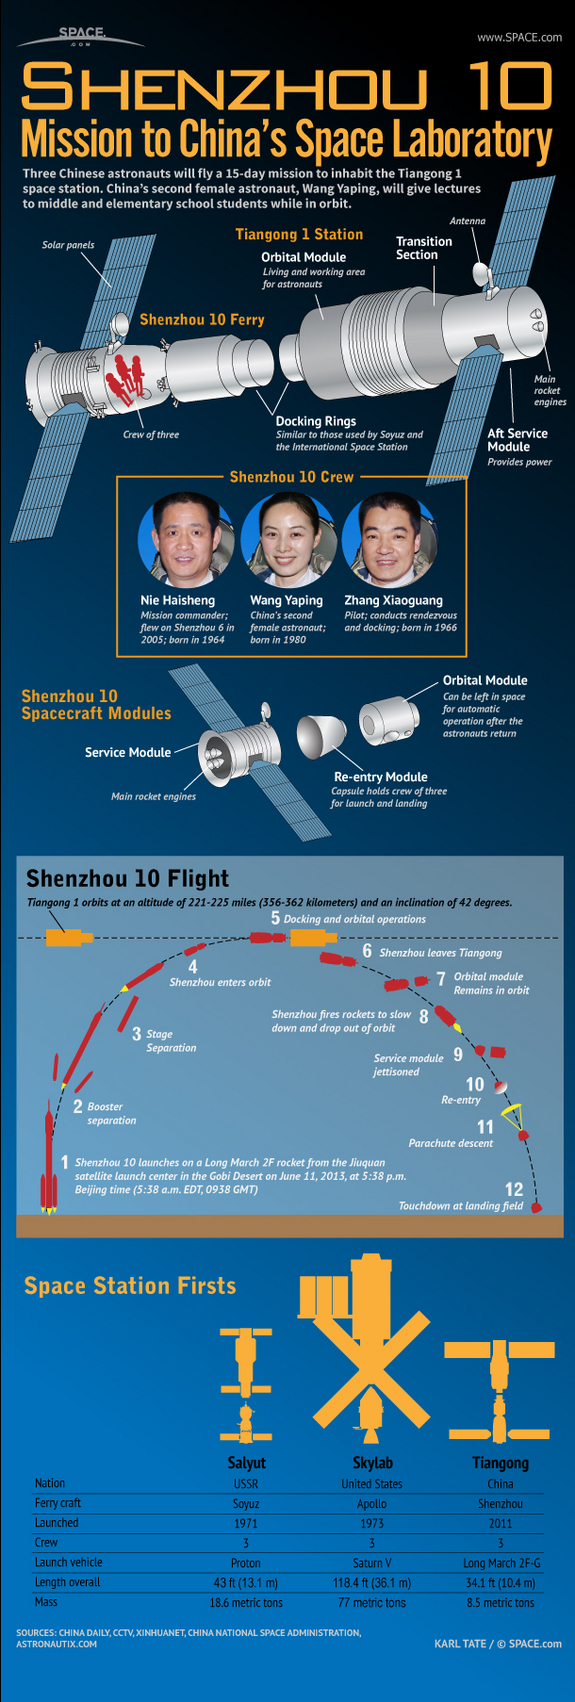 Find out how the Chinese Shenzhou 10 manned space flight works in this SPACE.com infographic.